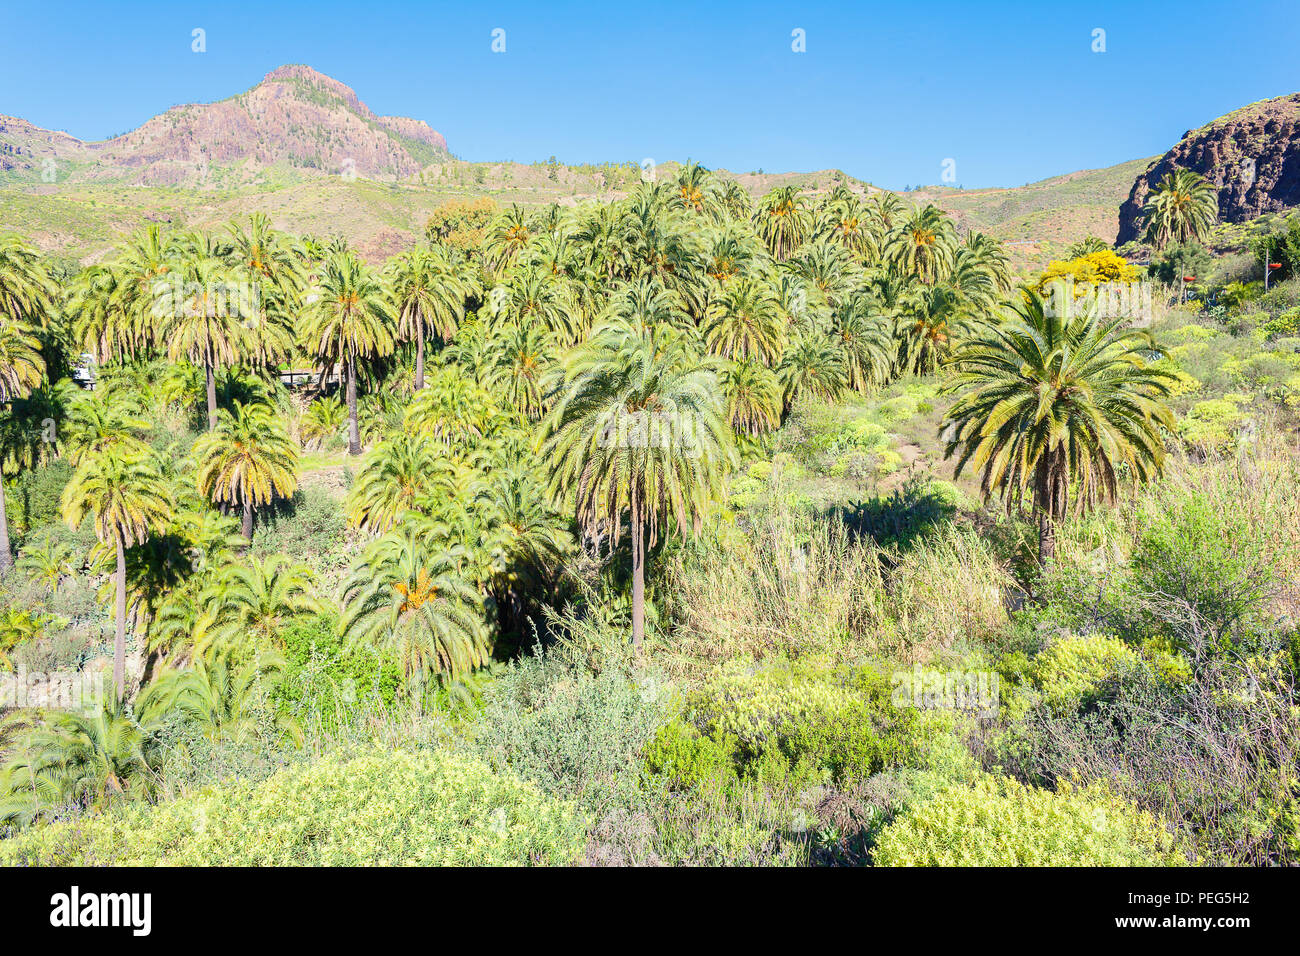 Landscape of palm trees, Gran Canaria, Canary Islands, Spain - Stock Image